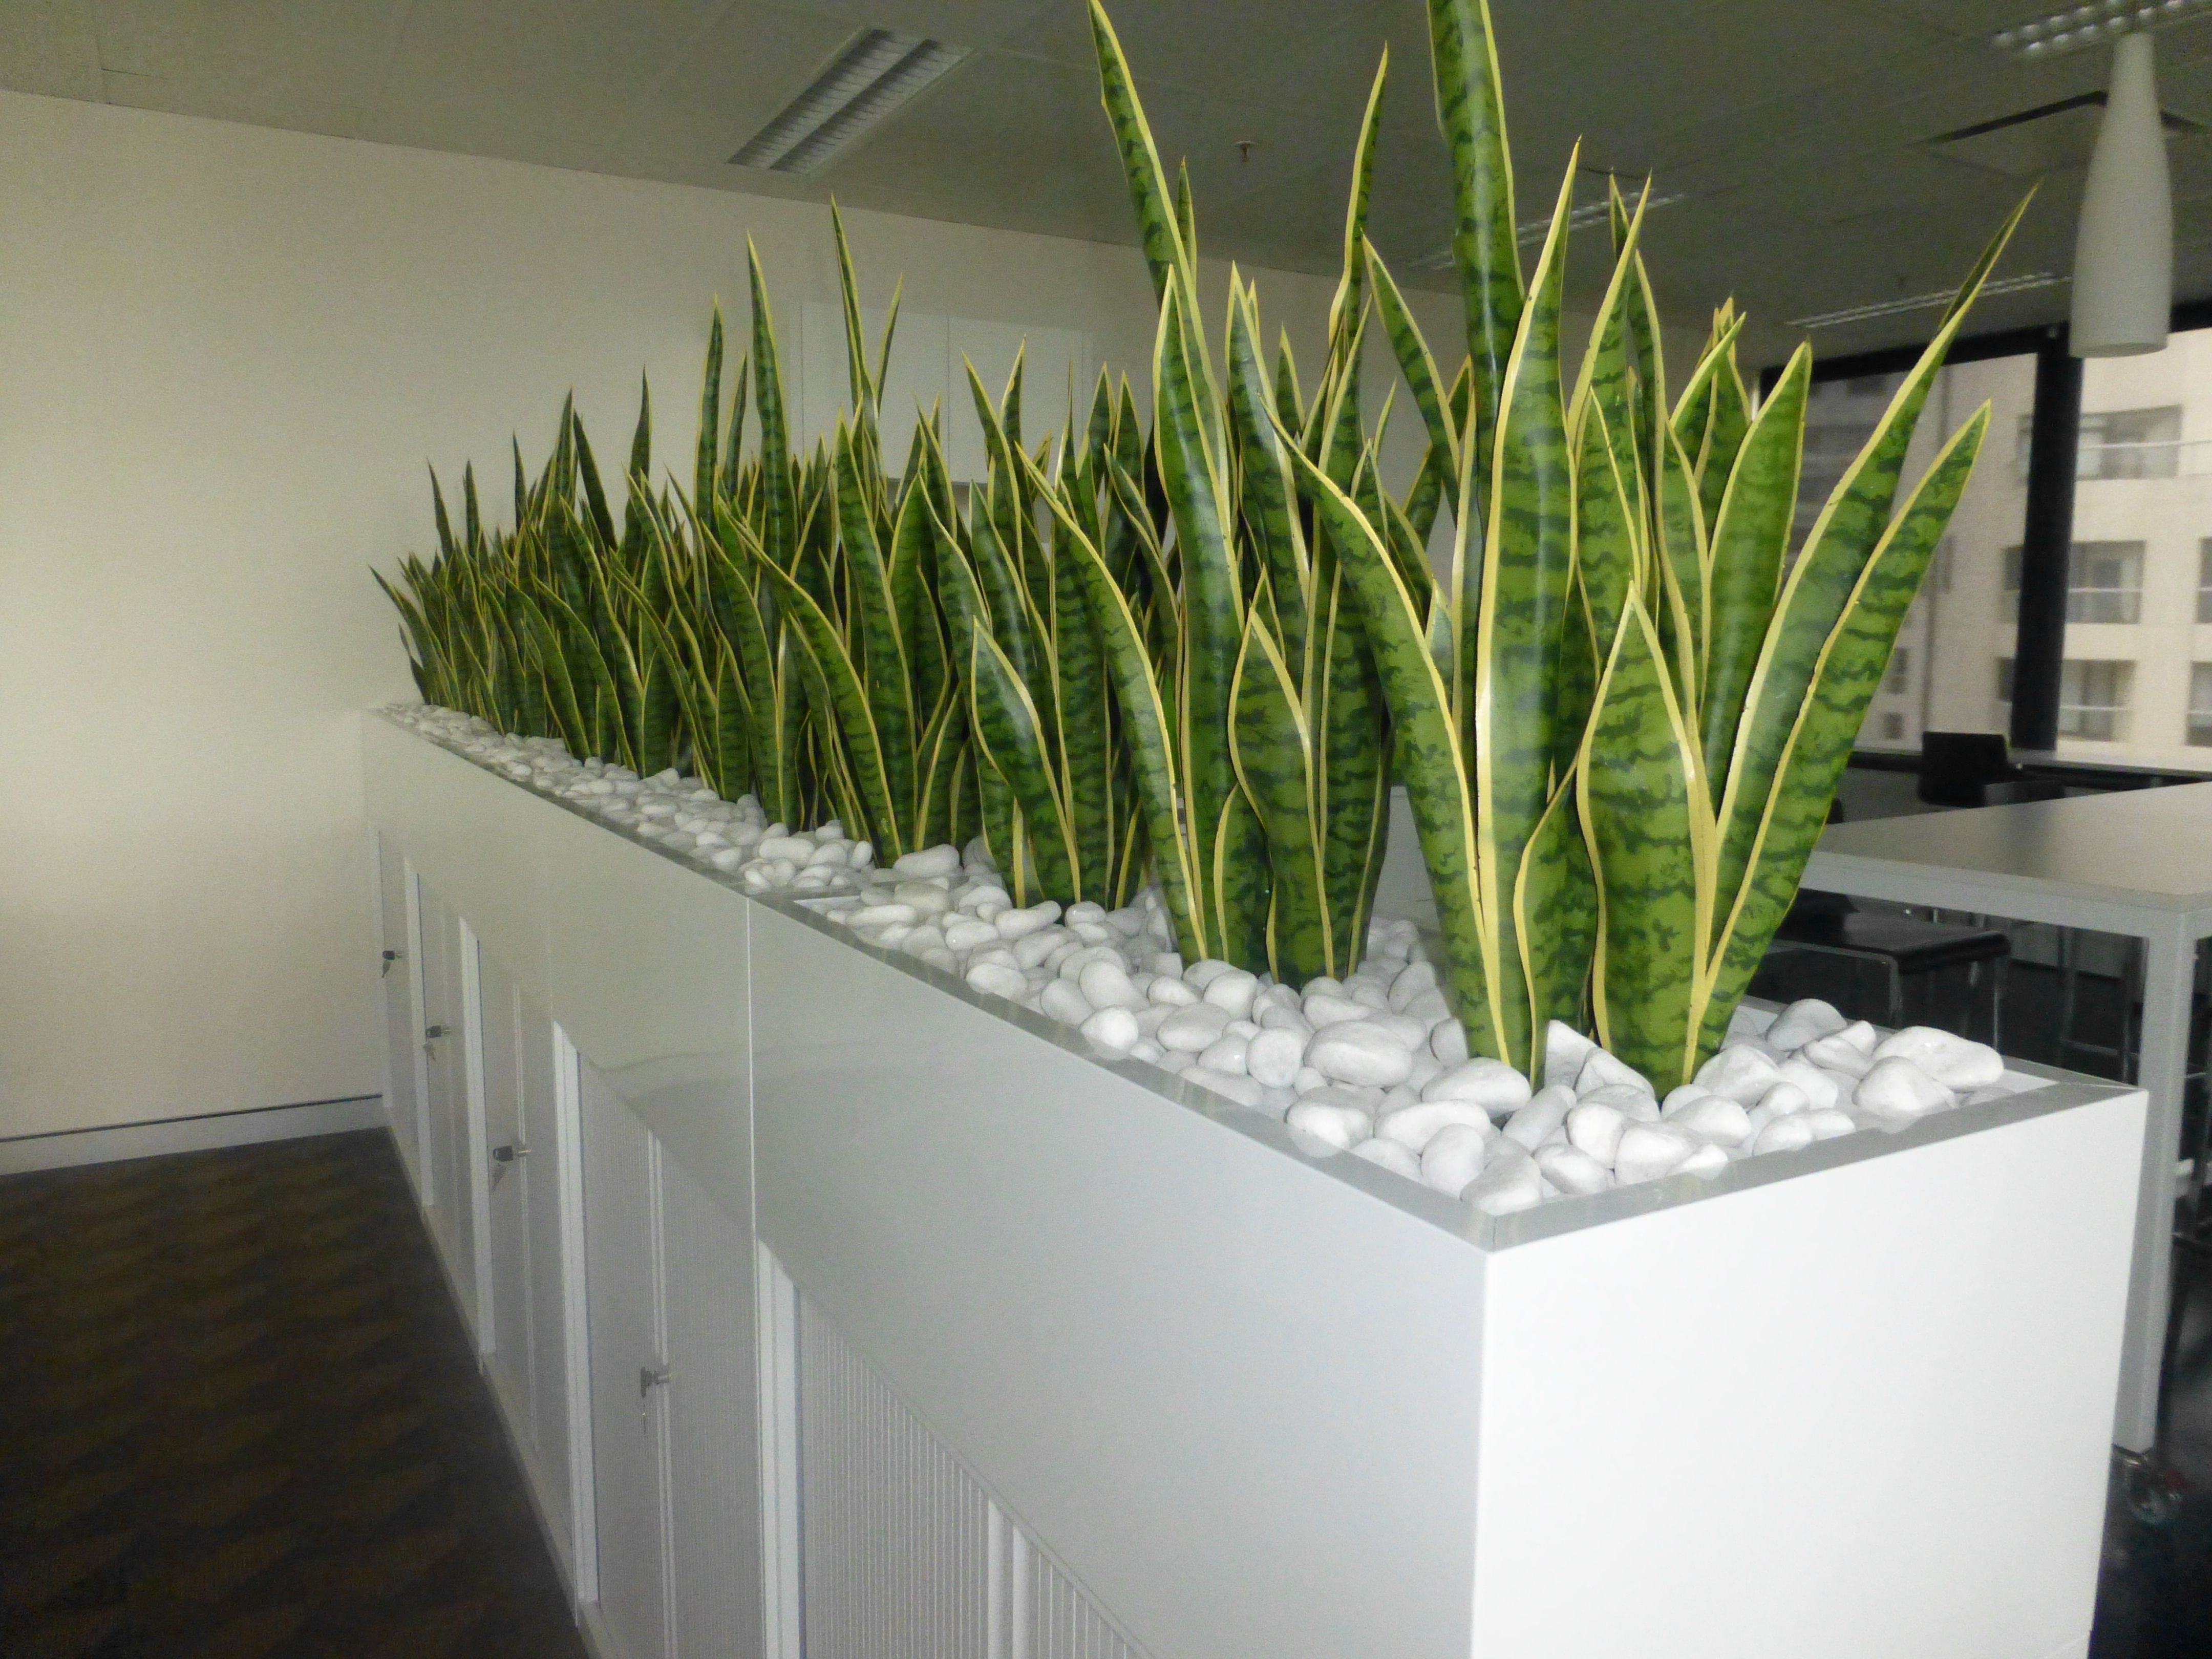 Planter box of mother in lawus tongue for a corporate office room